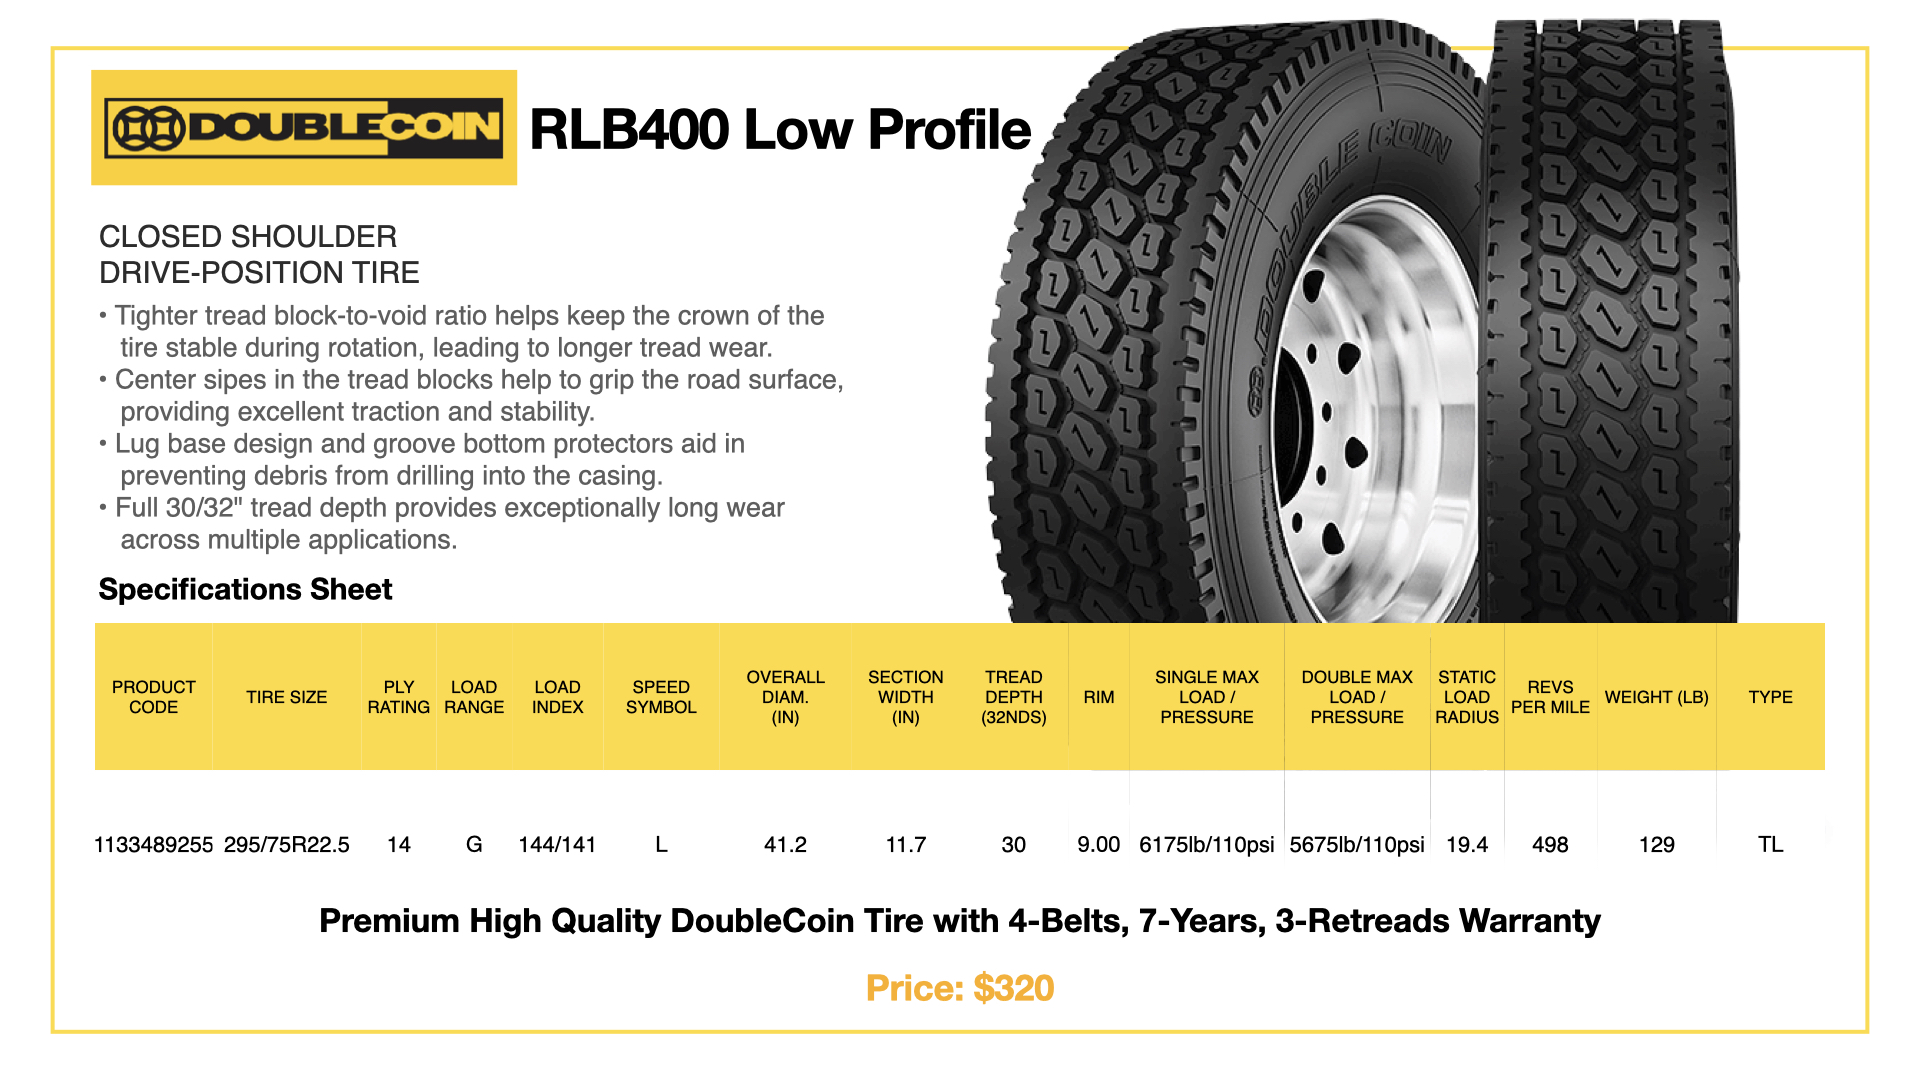 DoubleCoin RLB400 Low Profile Specifications Sheet